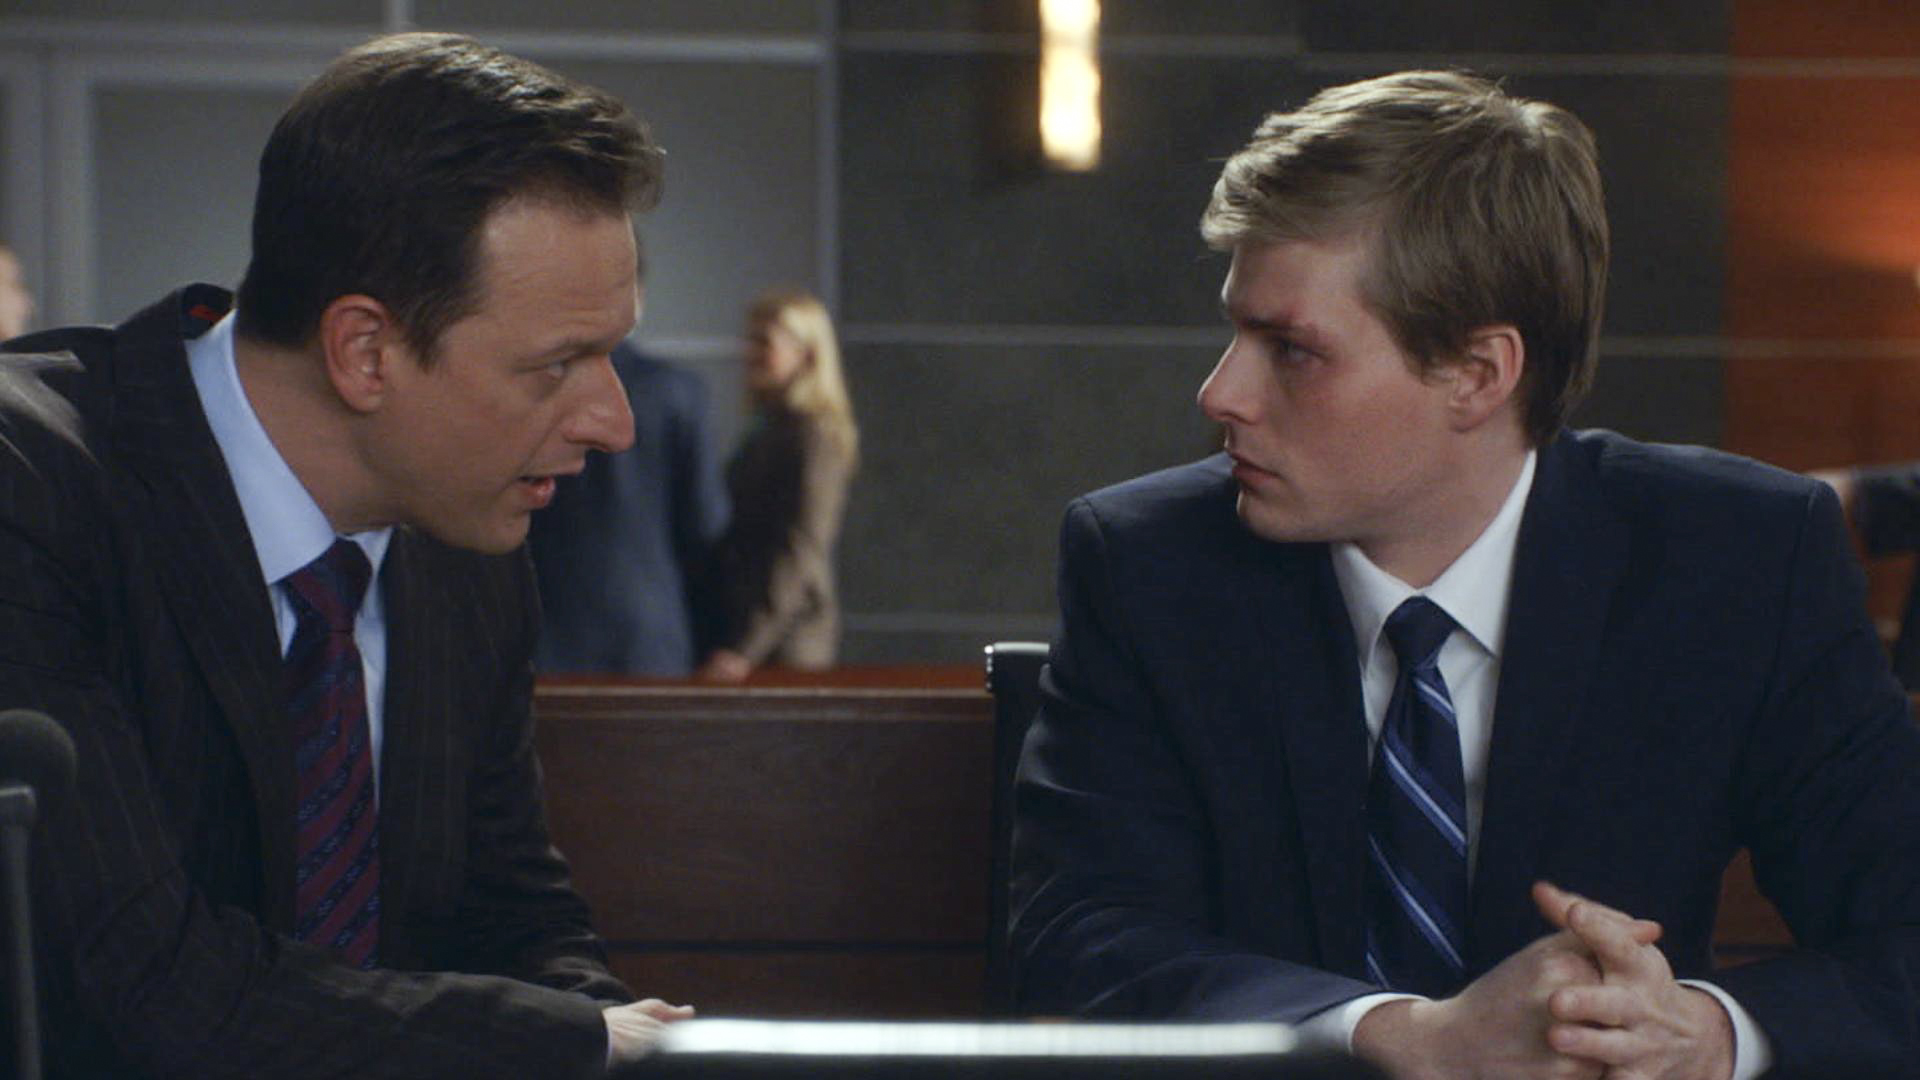 The departure of The Good Wife's Josh Charles, left, with guest star Hunter Parrish, leaves several storylines up in the air.